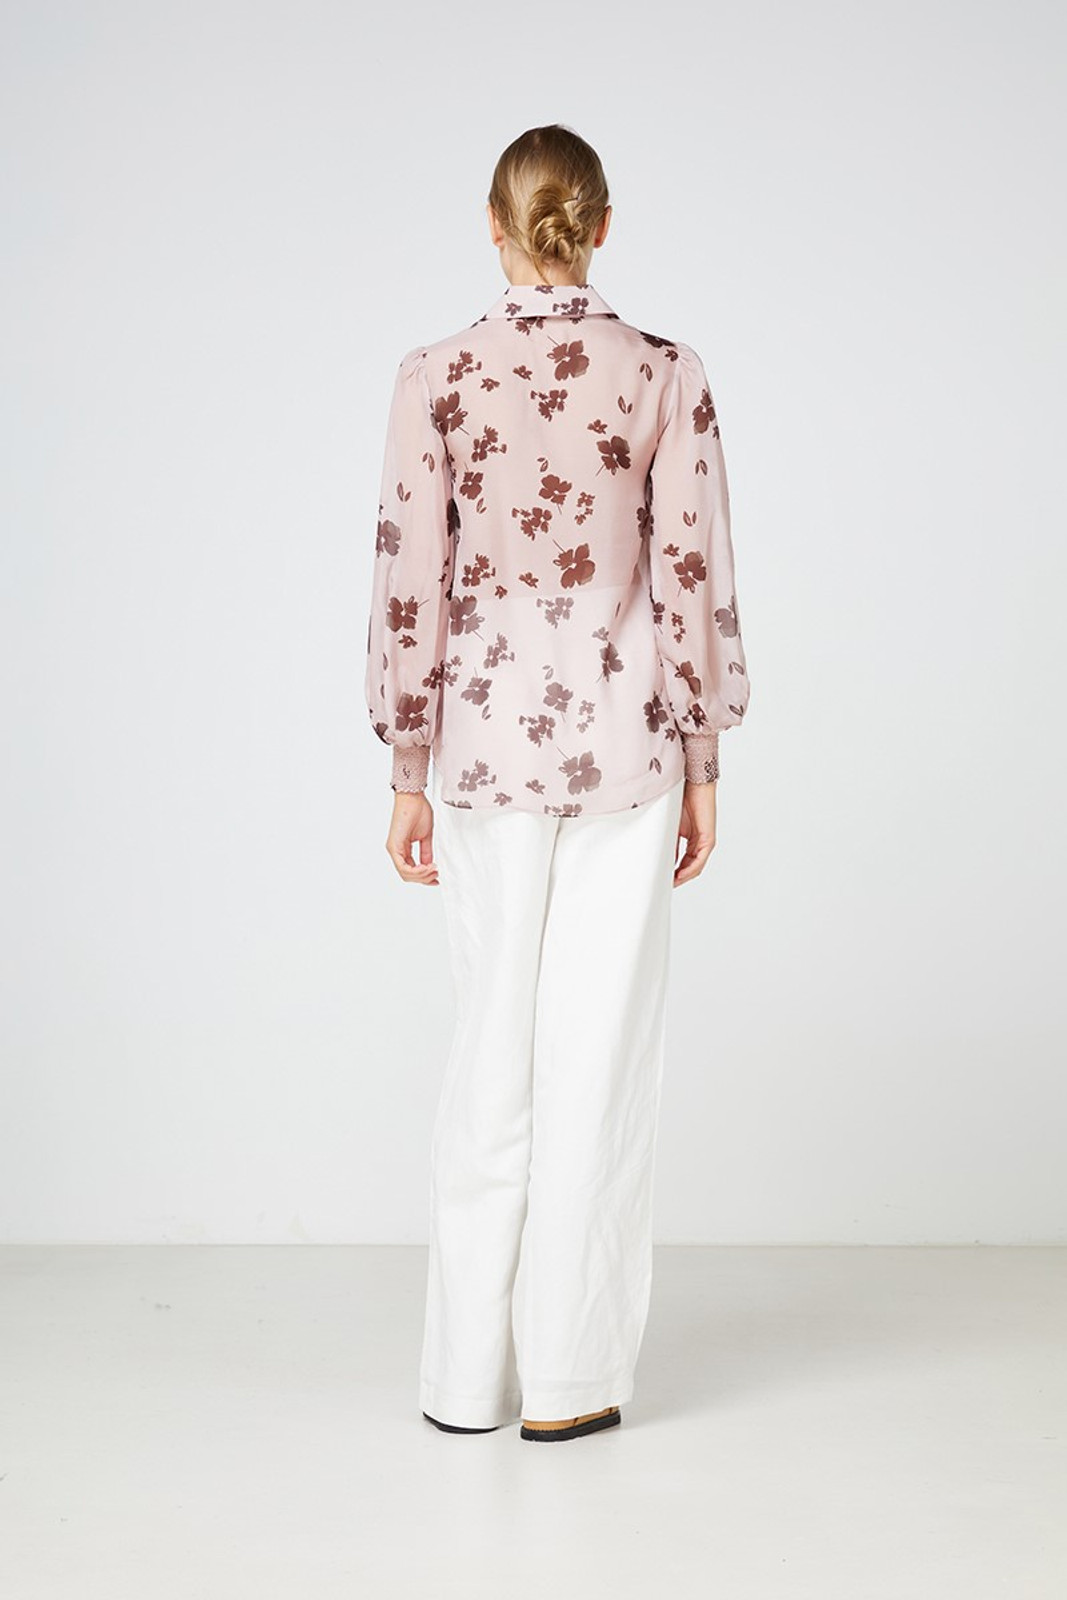 Elka Collective Portofino Shirt Pink  4